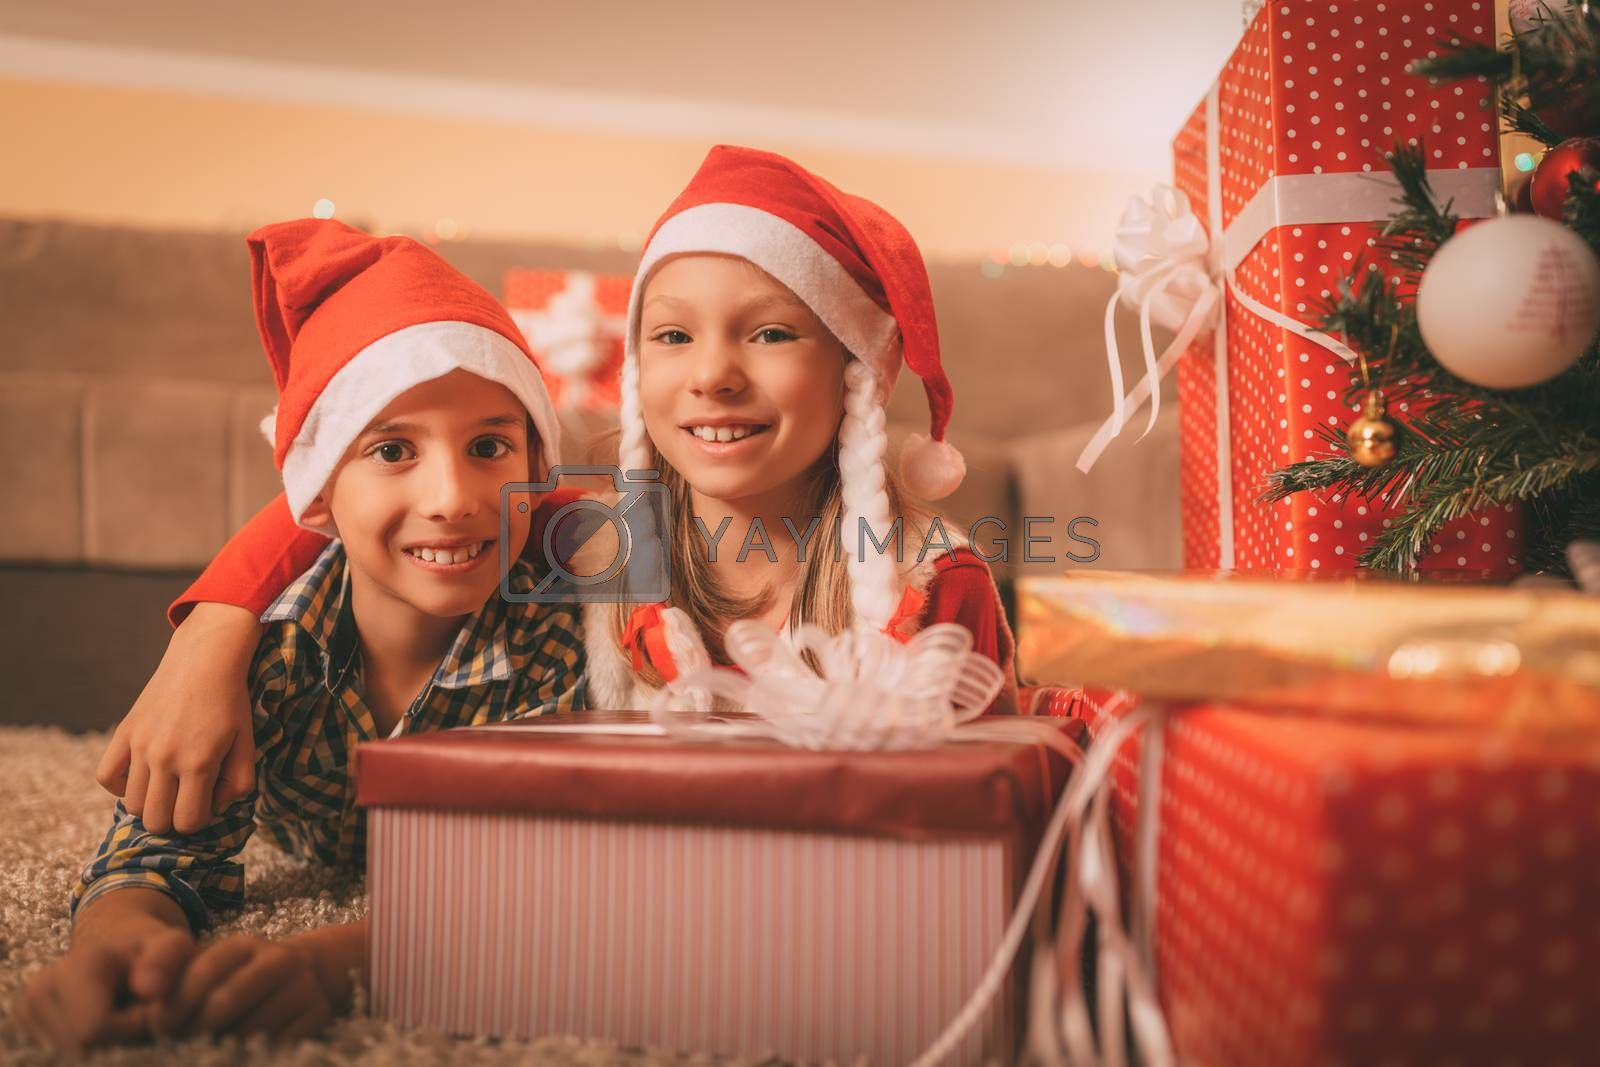 Cute smiling sister and brother with many presents at the home in a Christmas time. They are embraced and looking at camera.